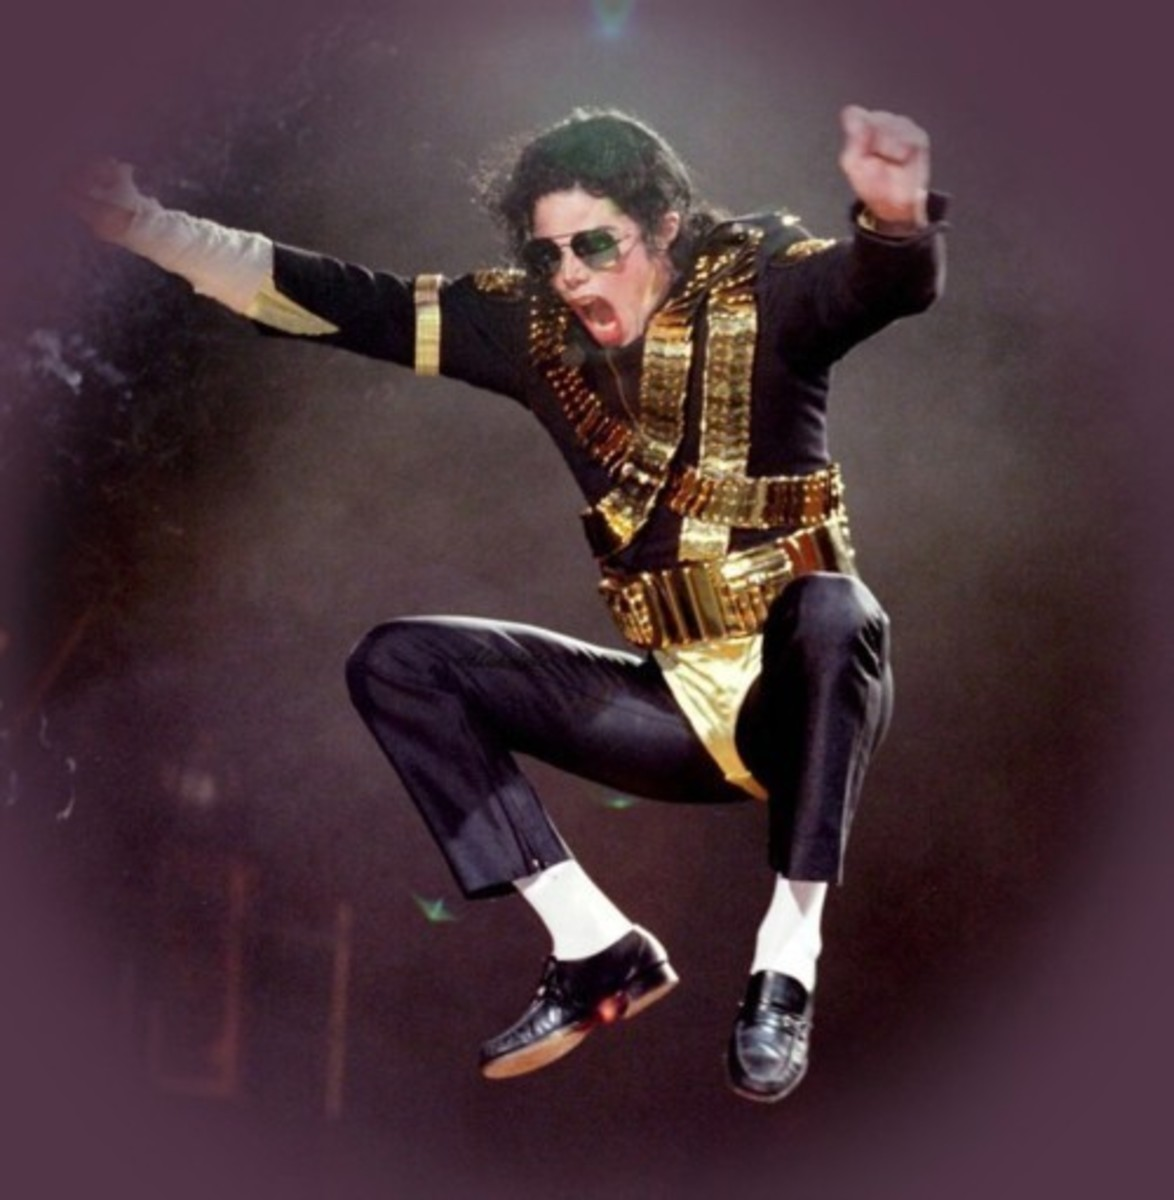 MJ live in 1993, here in full Dangerous-era costume.